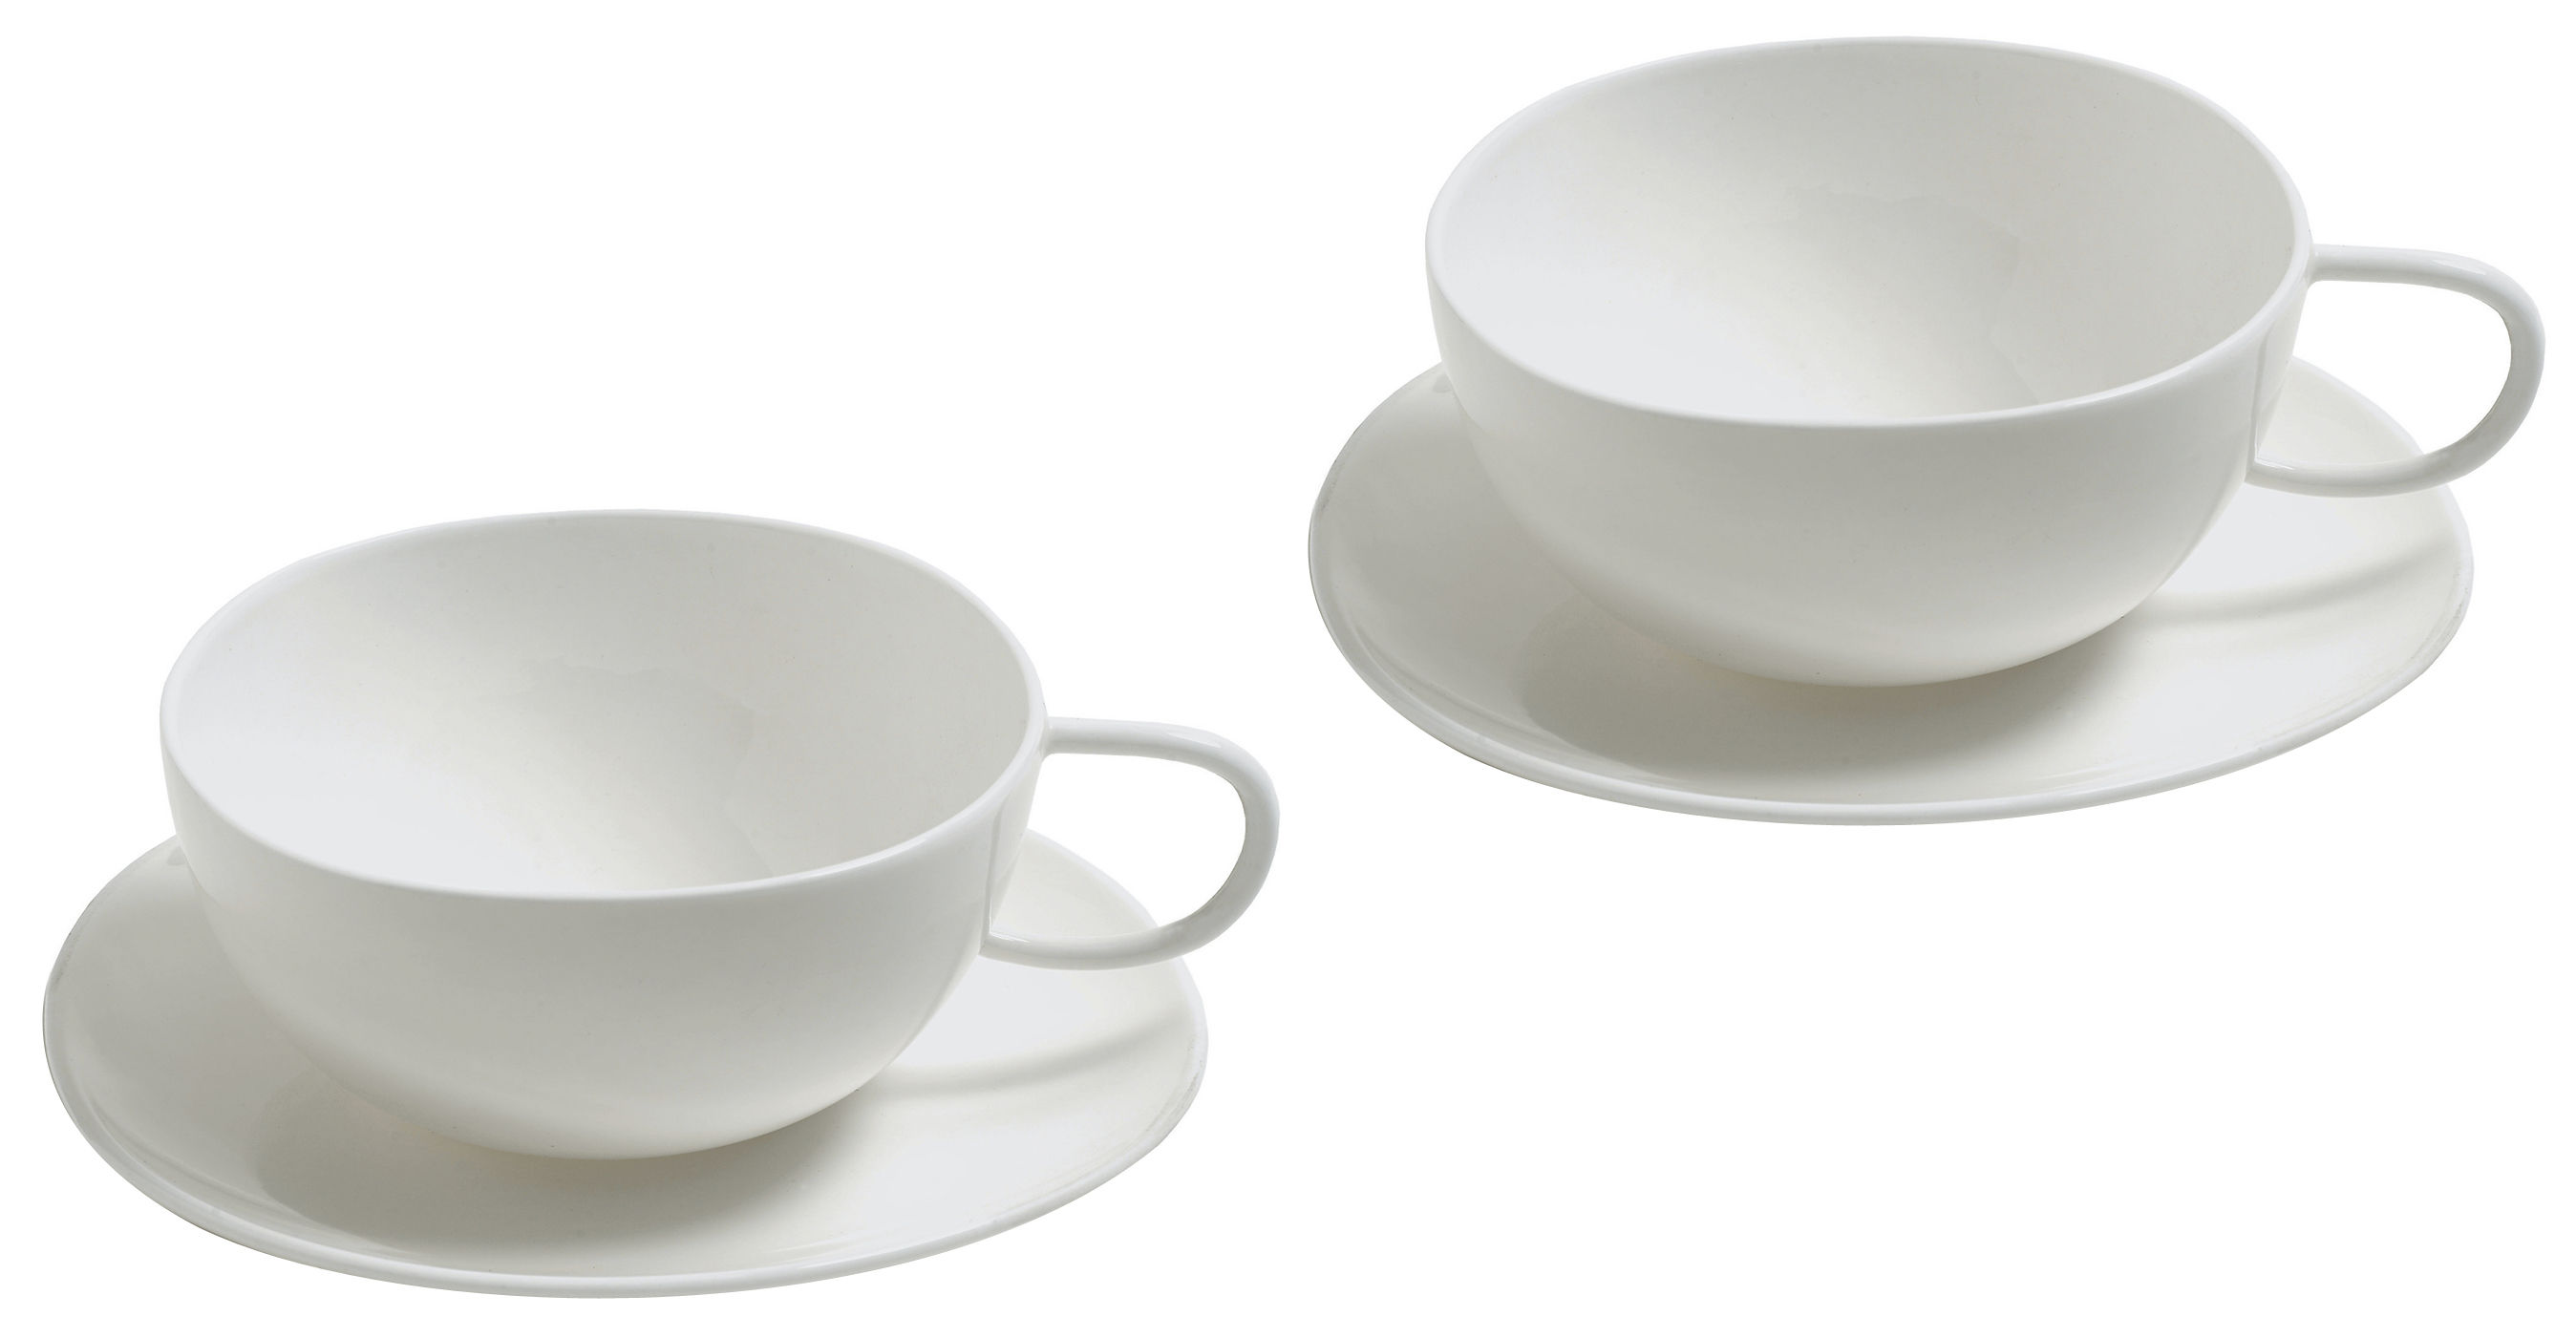 Tableware - Coffee Mugs & Tea Cups - Fruit basket Teacup - Set of 2 cups + 2 saucers by Alessi - White - Bone china